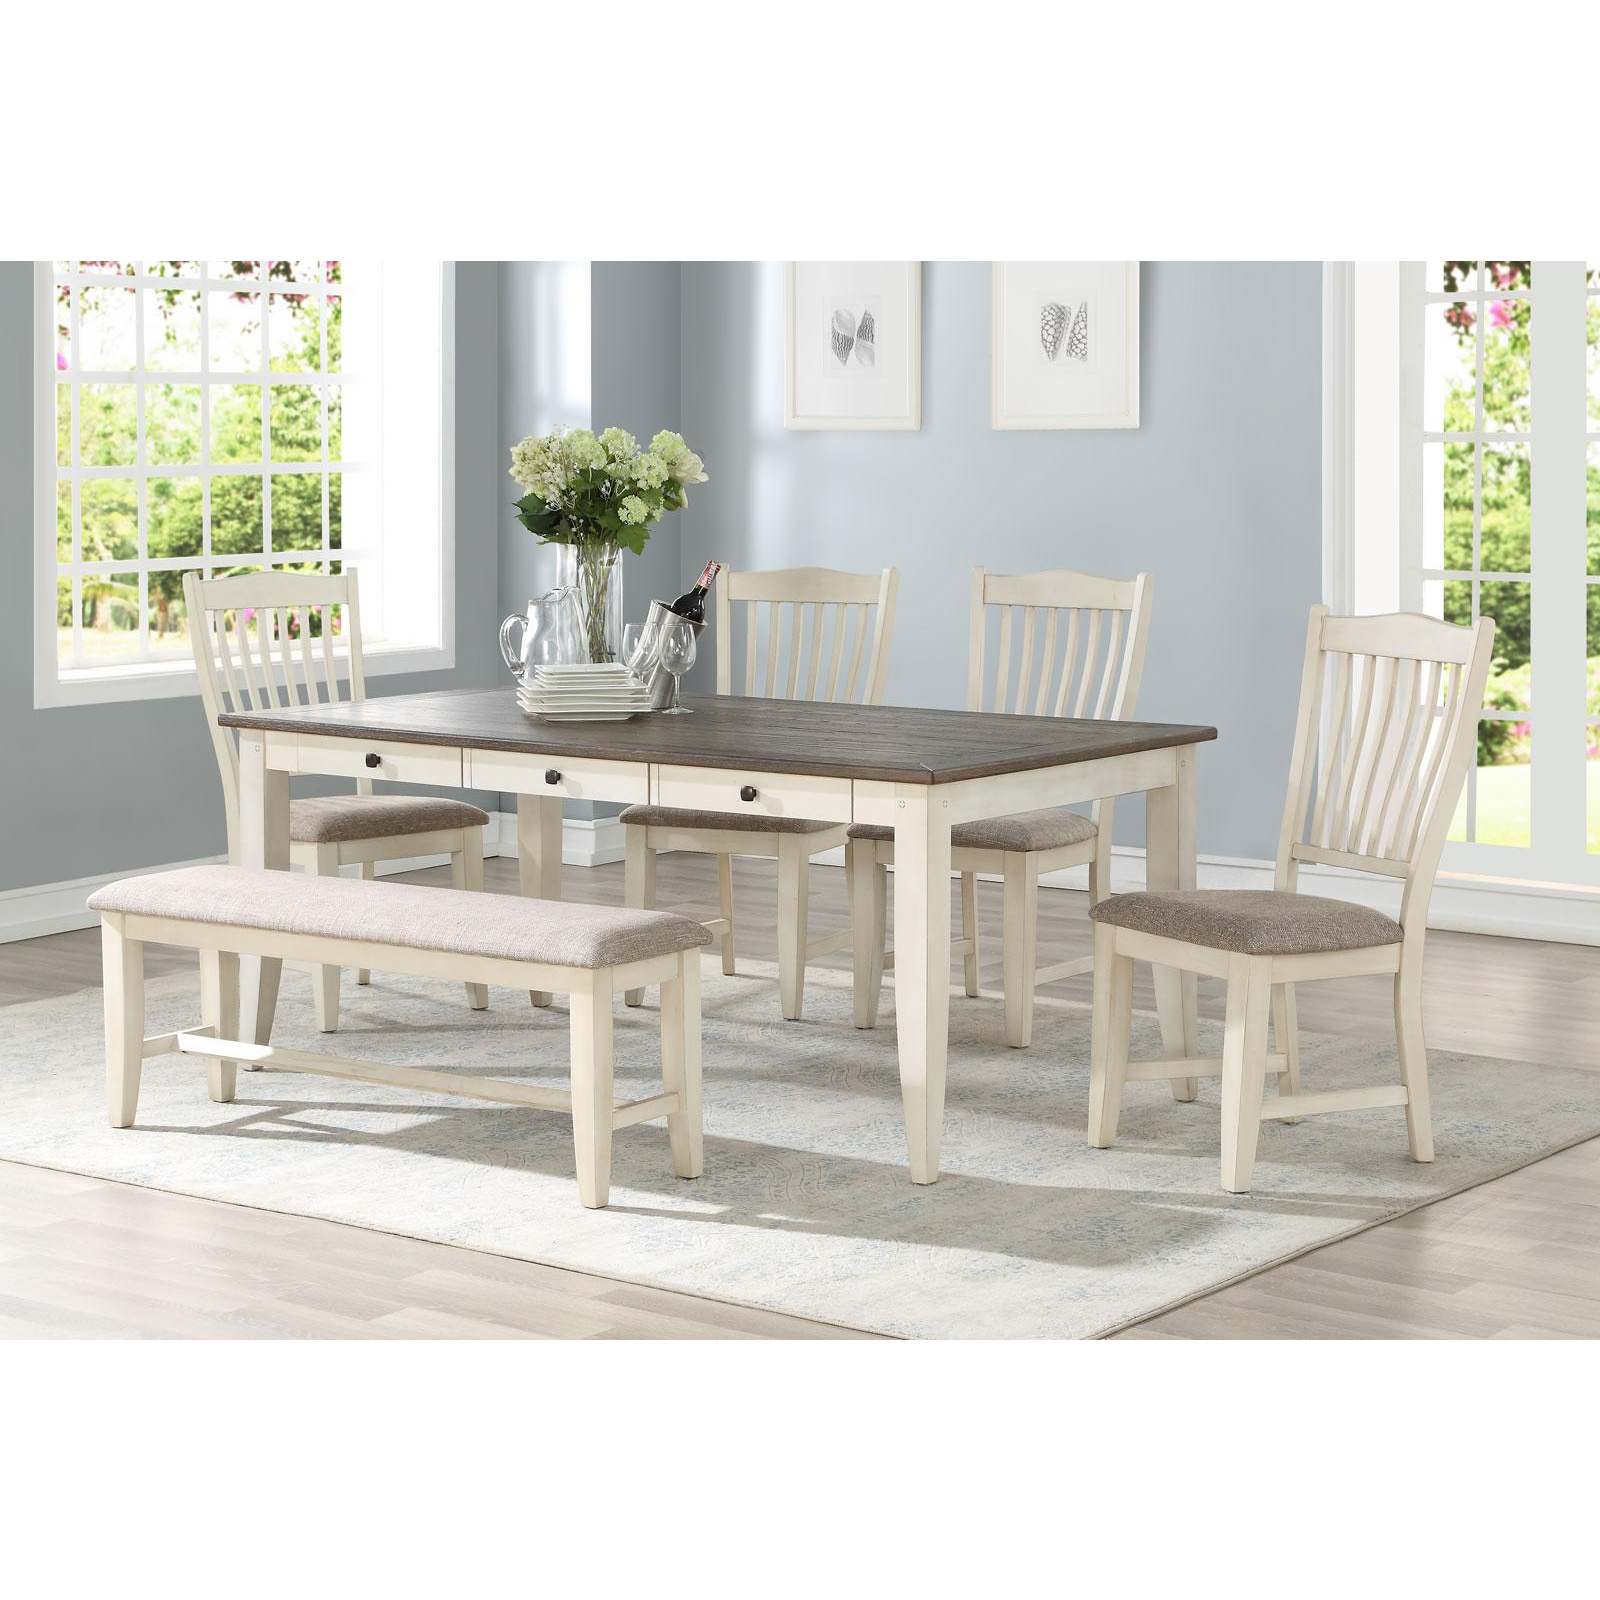 White Dining Table, Grey And White Dining Room Table With Bench